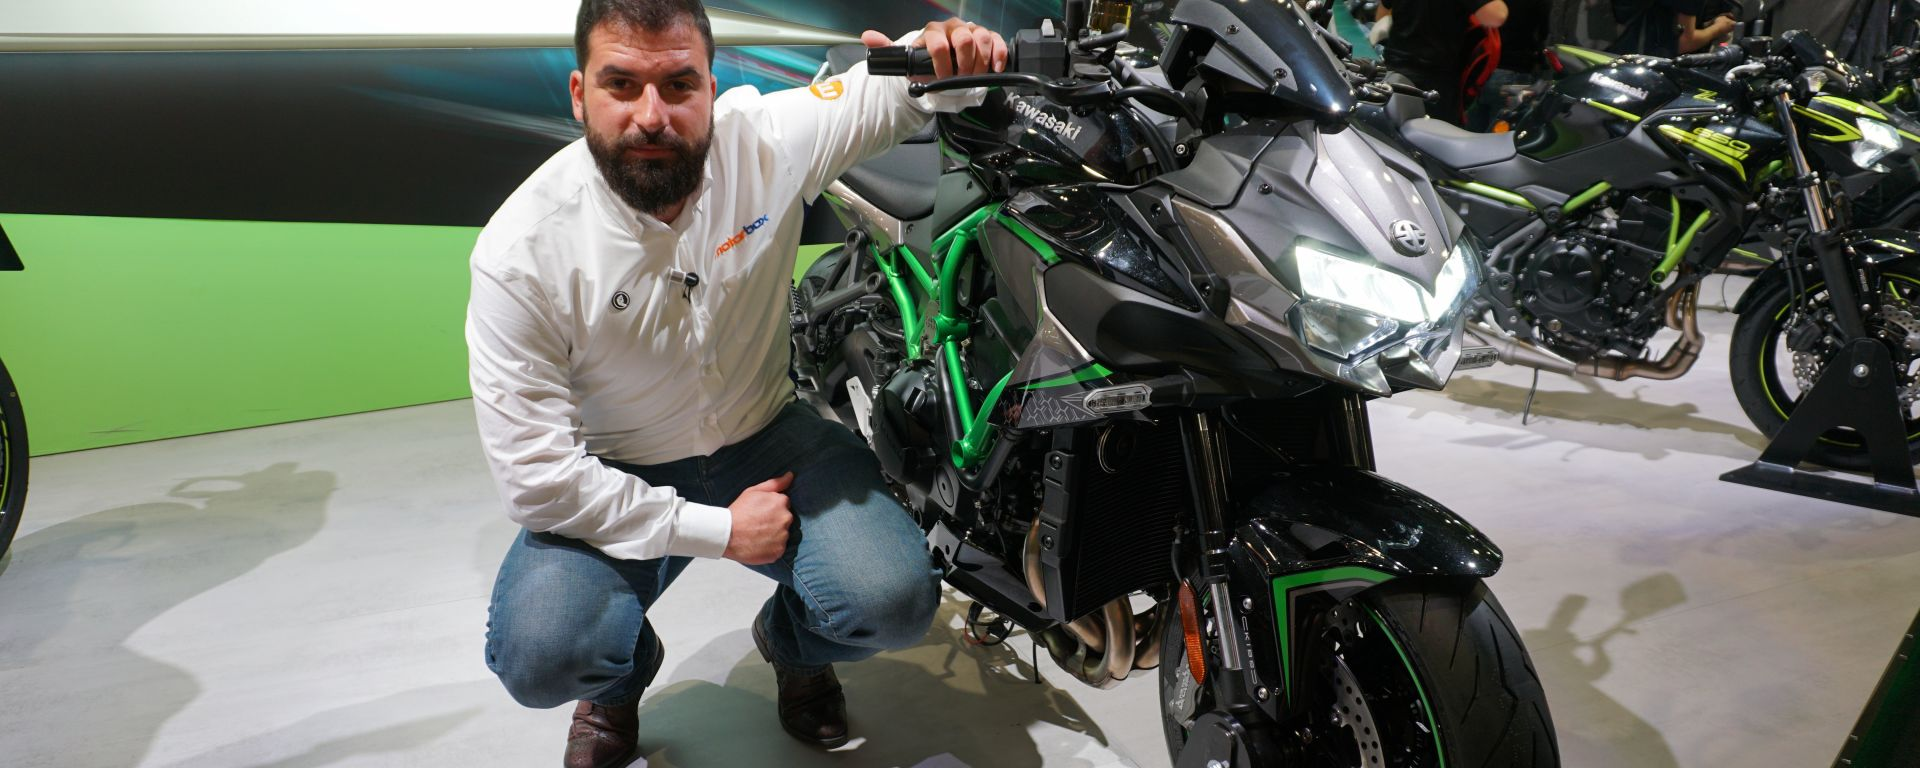 Kawasaki Z H2: la nuda da 200 cv in video da Eicma 2019